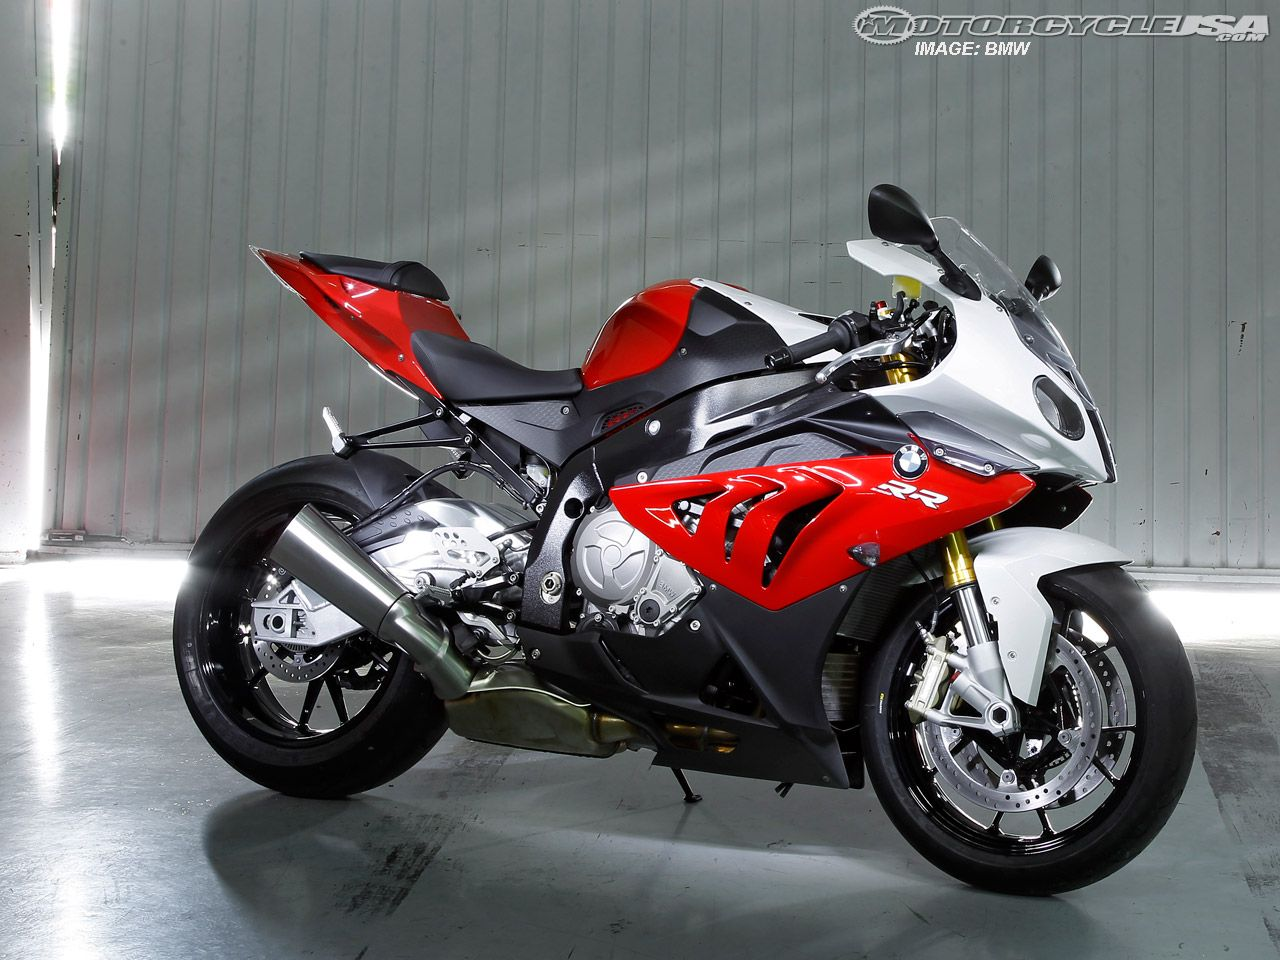 2012 Bmw S1000rr First Ride Photos Motorcycle Usa Bmw S1000rr Motorcycle Usa Bmw